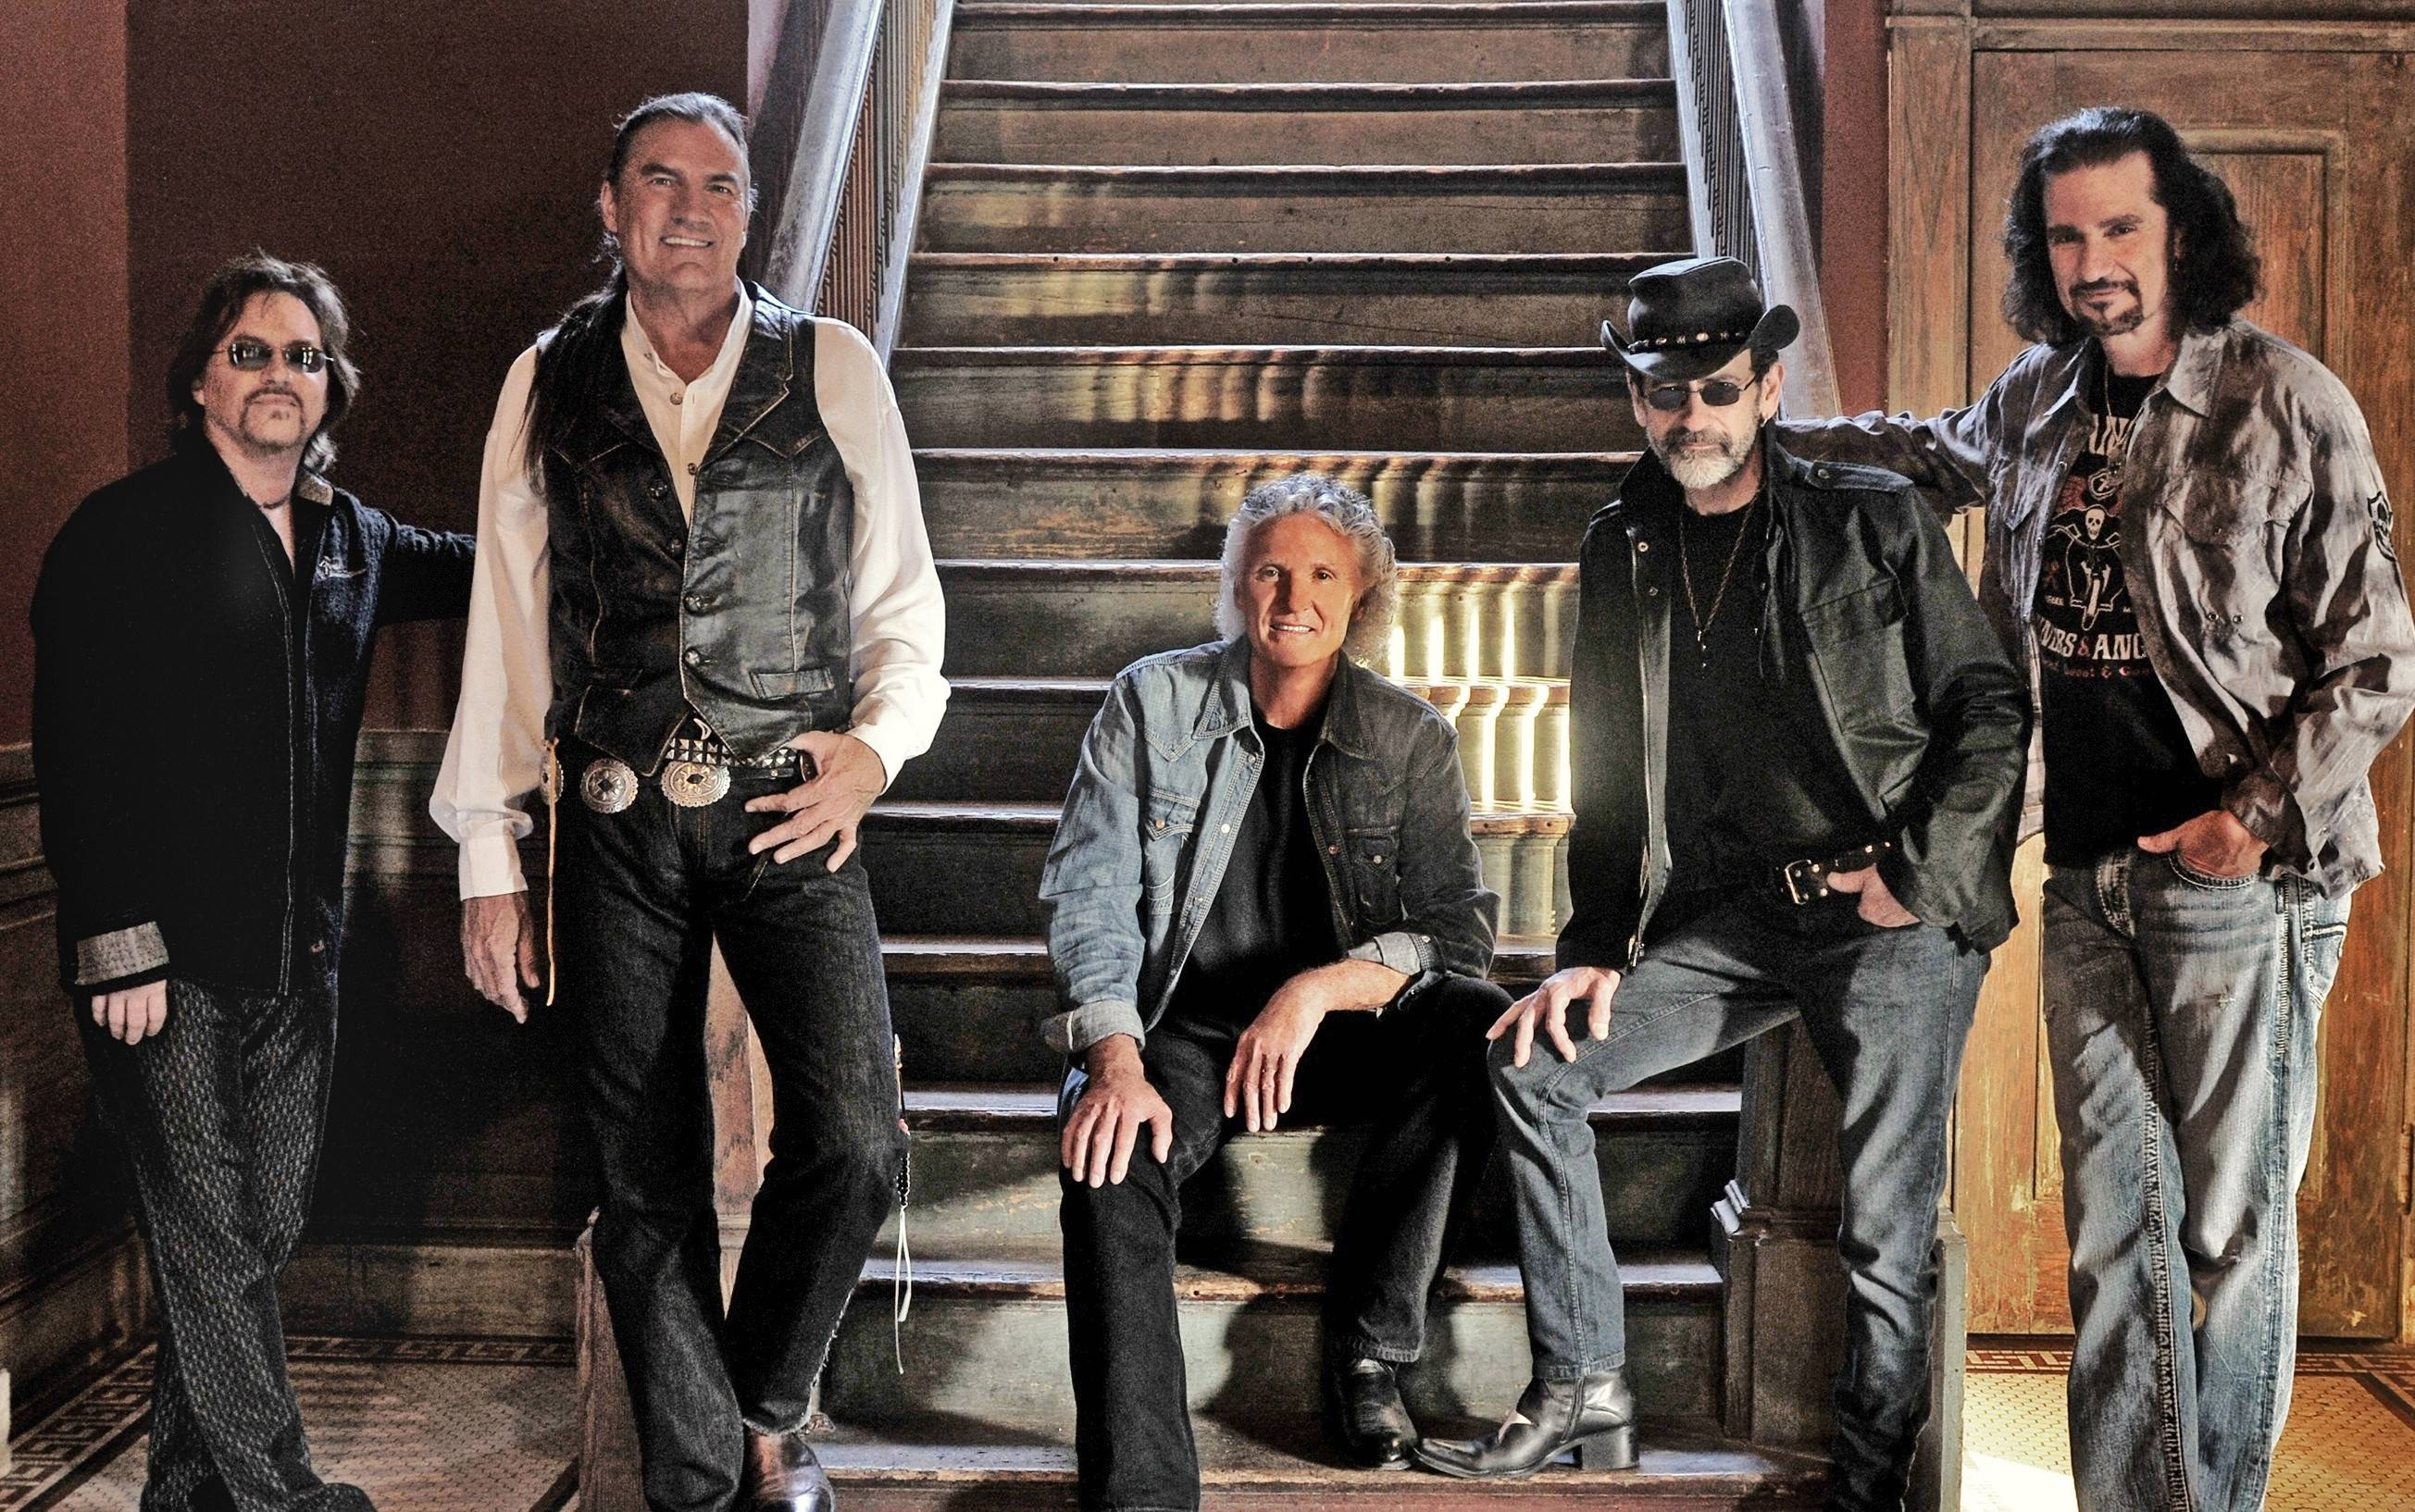 Grand Funk Railroad plays the Genesee Theatre in Waukegan on Thursday, May 17.